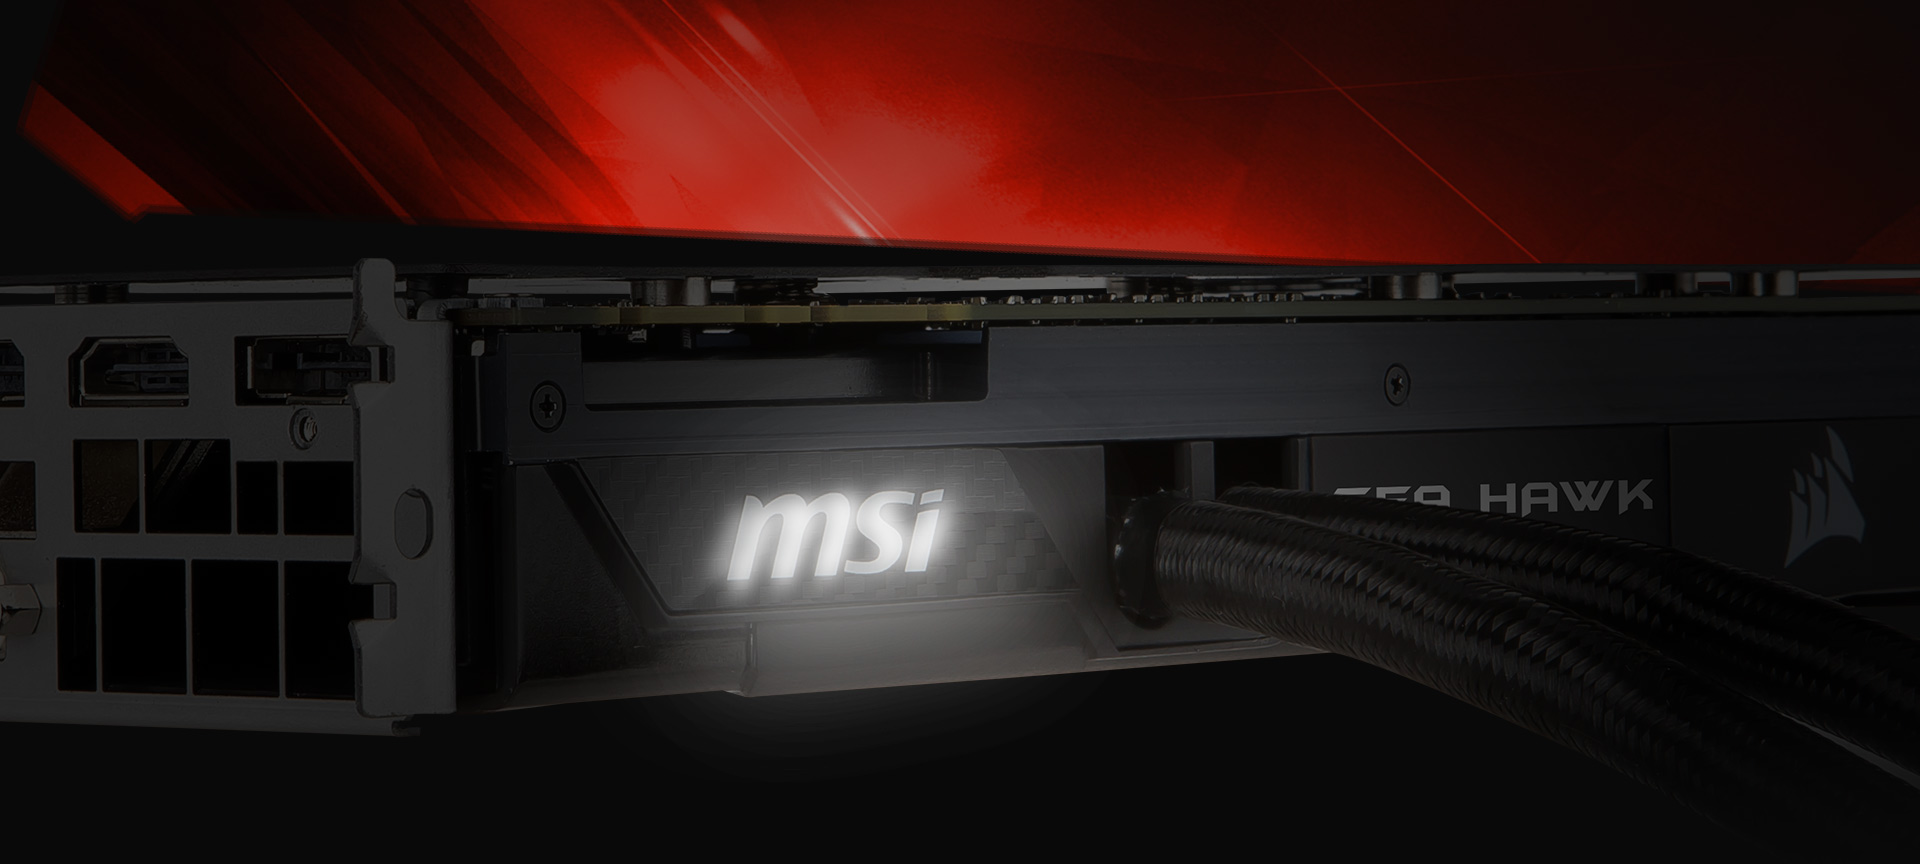 https://asset.msi.com/global/picture/image/feature/vga/NVIDIA/GTX1080/1080SEAHAWK/1080Seahawk_msiNew.jpg